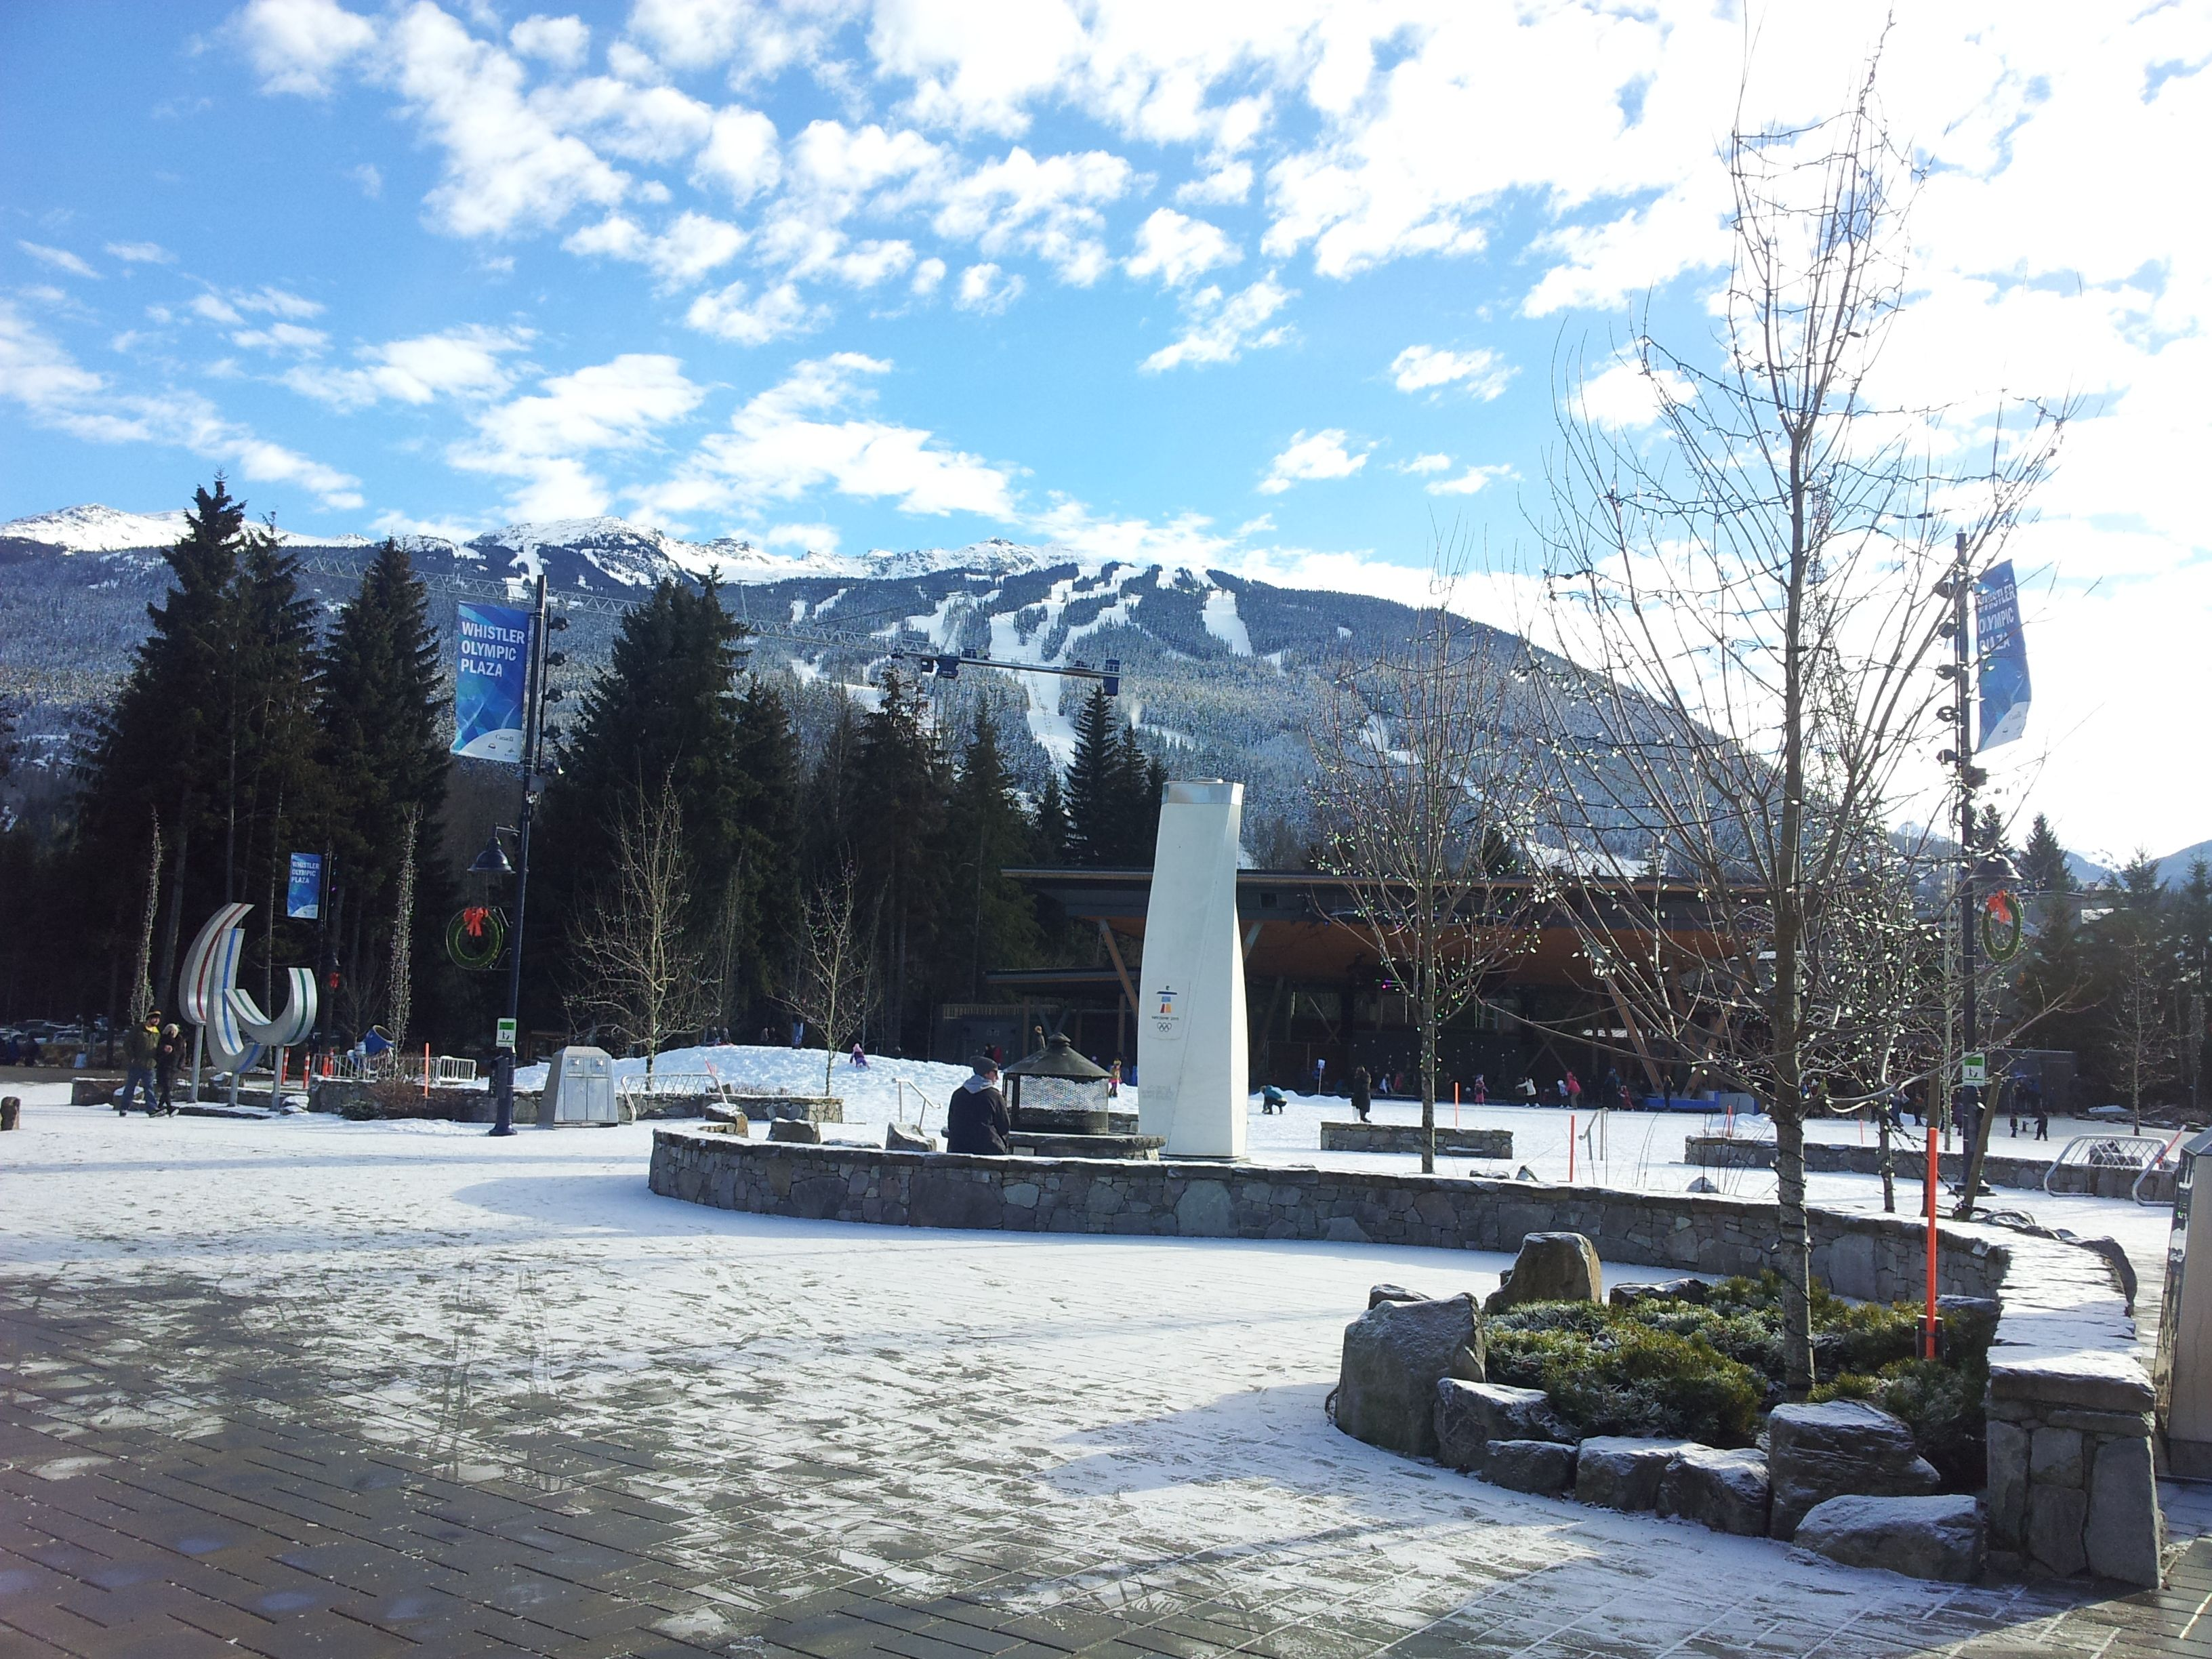 Outdoor winter skating rink in olympic plaza whistler